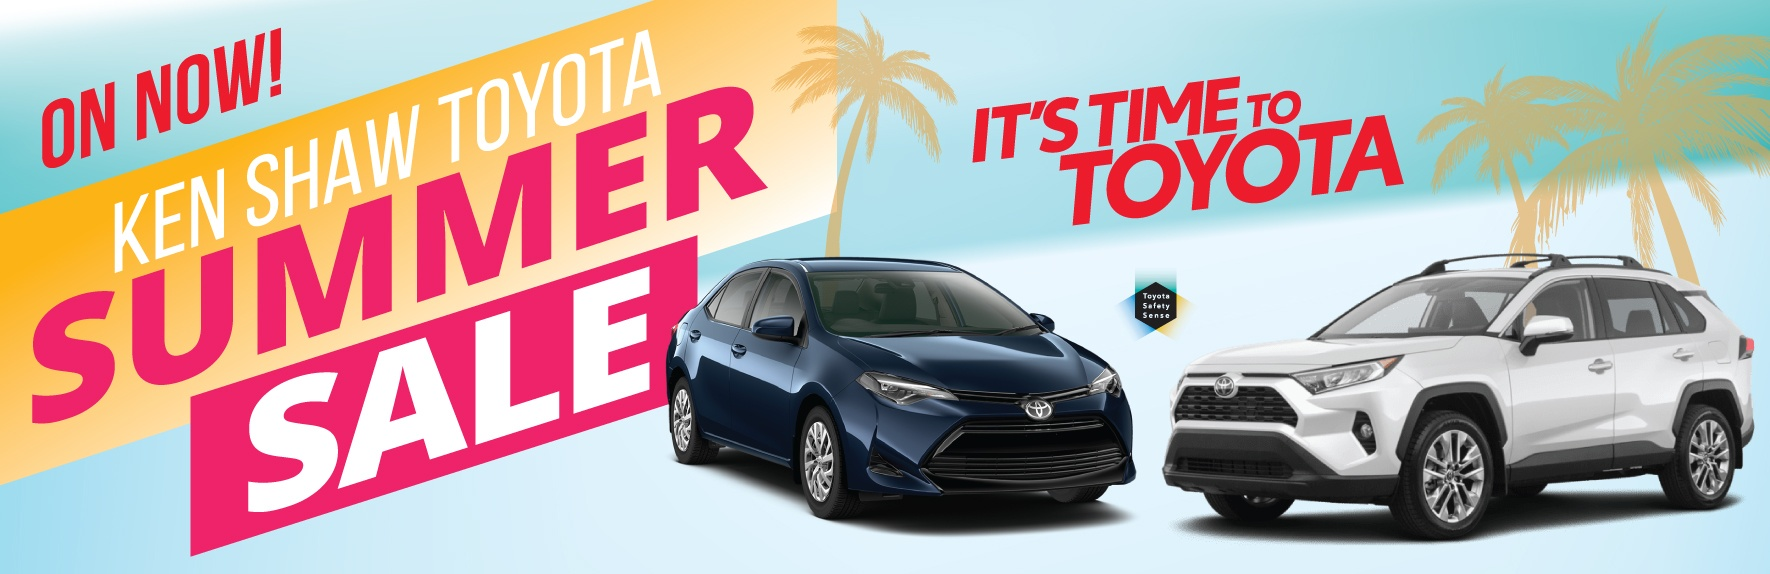 Toyota sale in Toronto at Ken Shaw Toyota